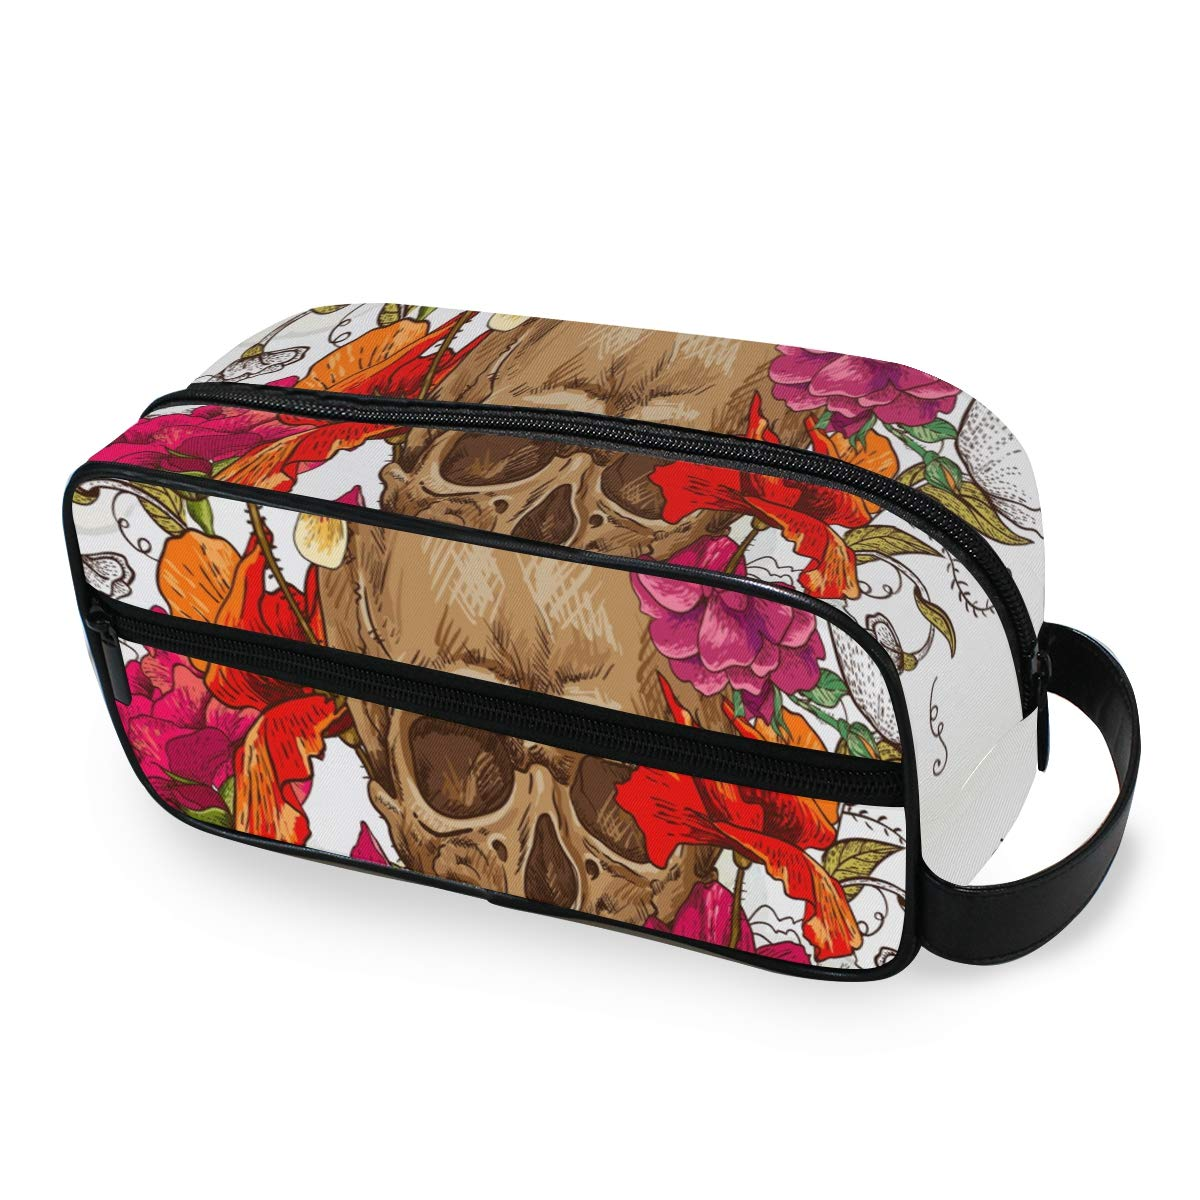 Cosmetic Bag Makeup Case Watercolor Flora Skull Portable Toiletry Bag Organizer Accessories Case Tools Case for Trave